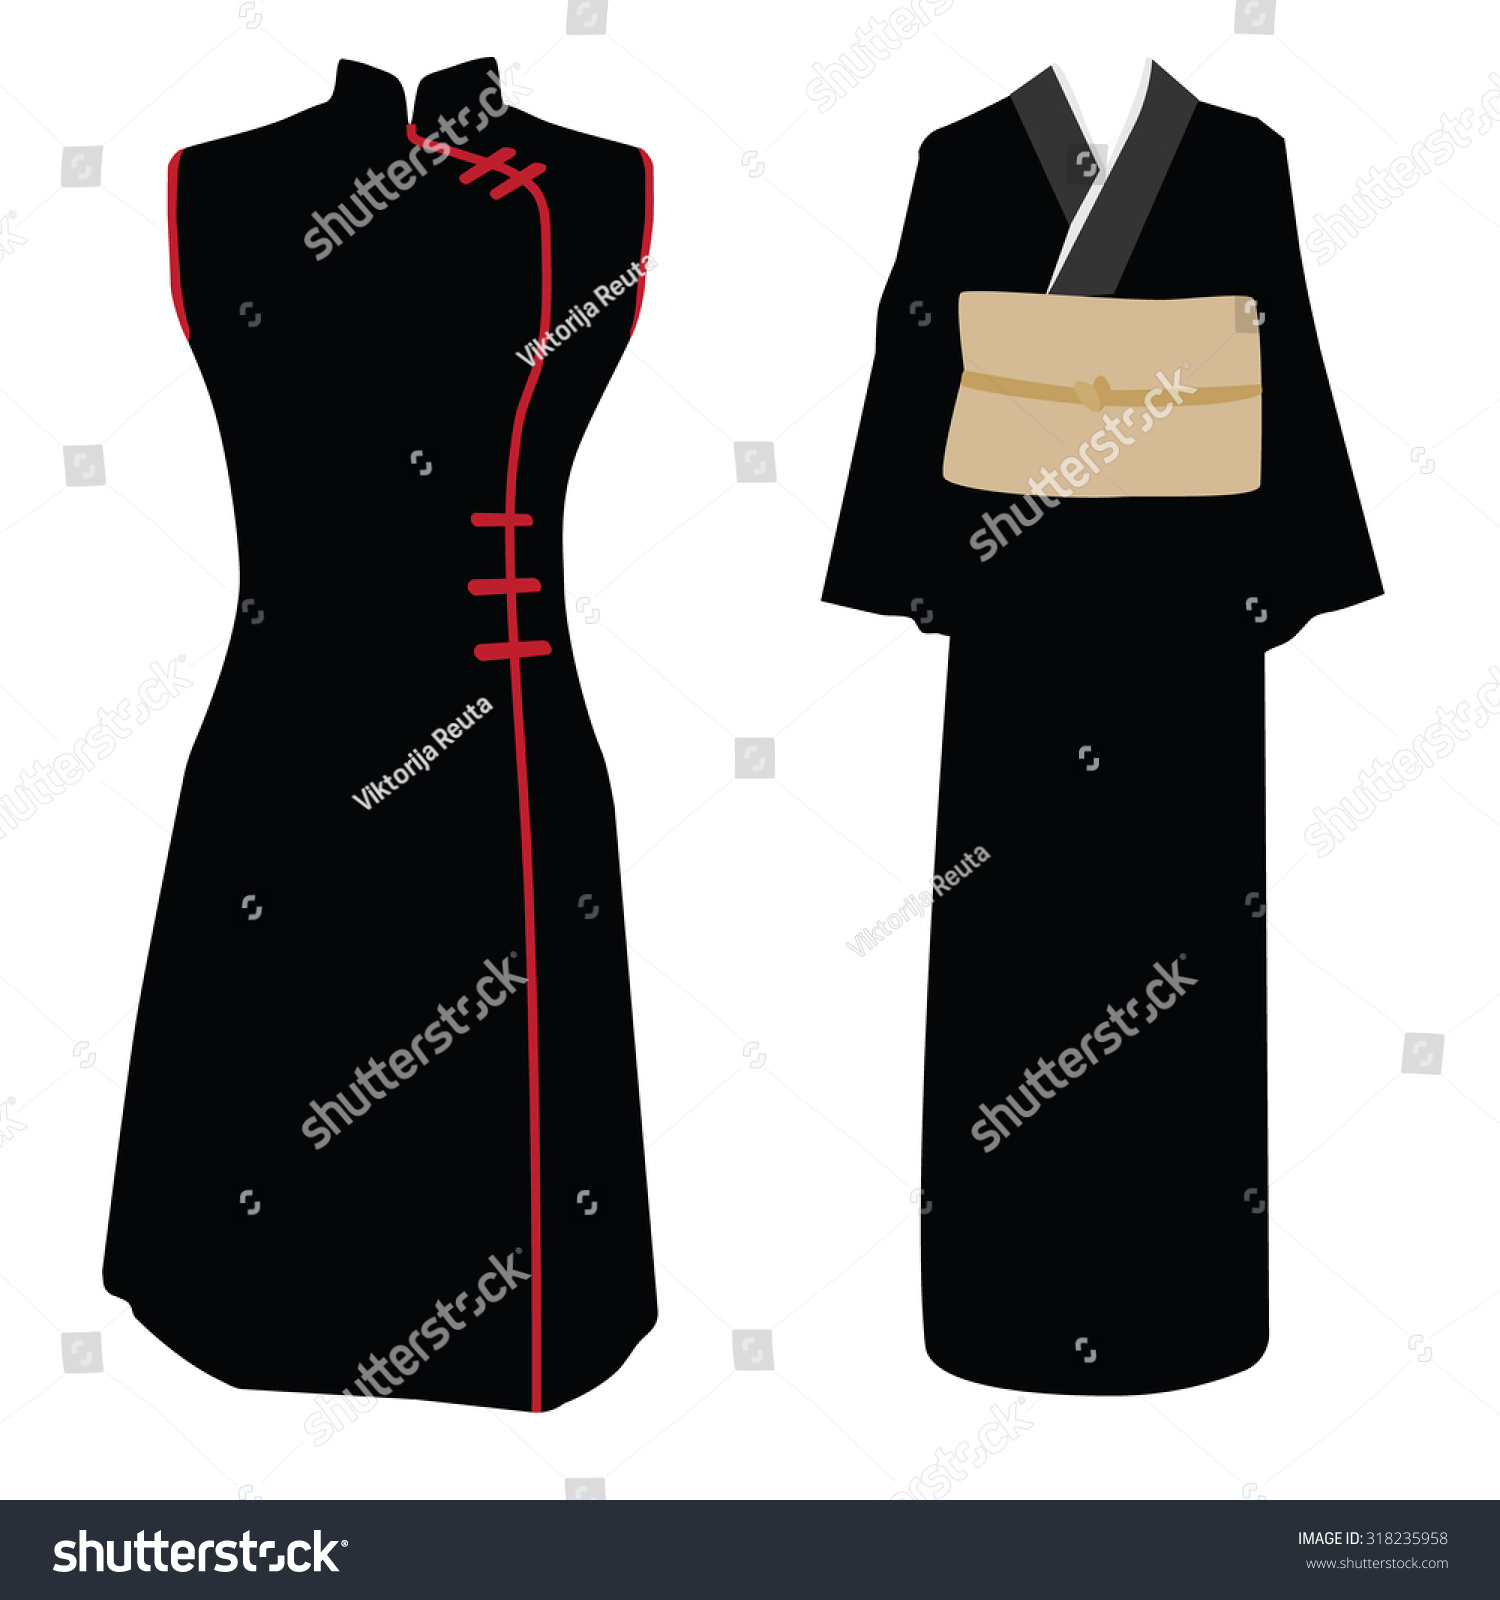 black and red woman traditional dress vector illustration. Black ...: www.shutterstock.com/pic-318235958/stock-vector-chinese-black-and...